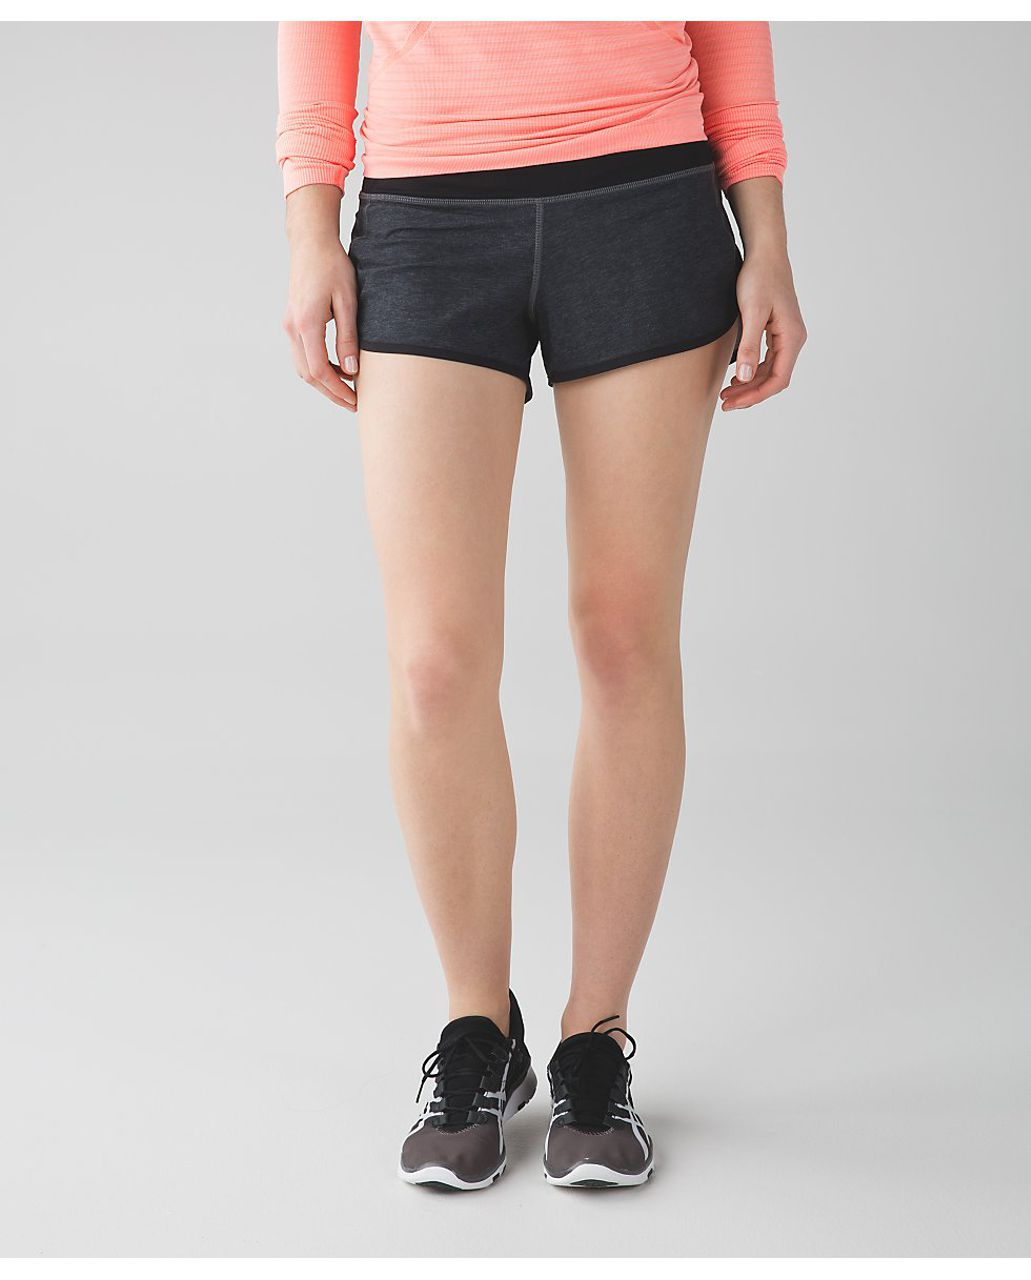 Lululemon Speed Short - Heathered Black / Black / Very Light Flare